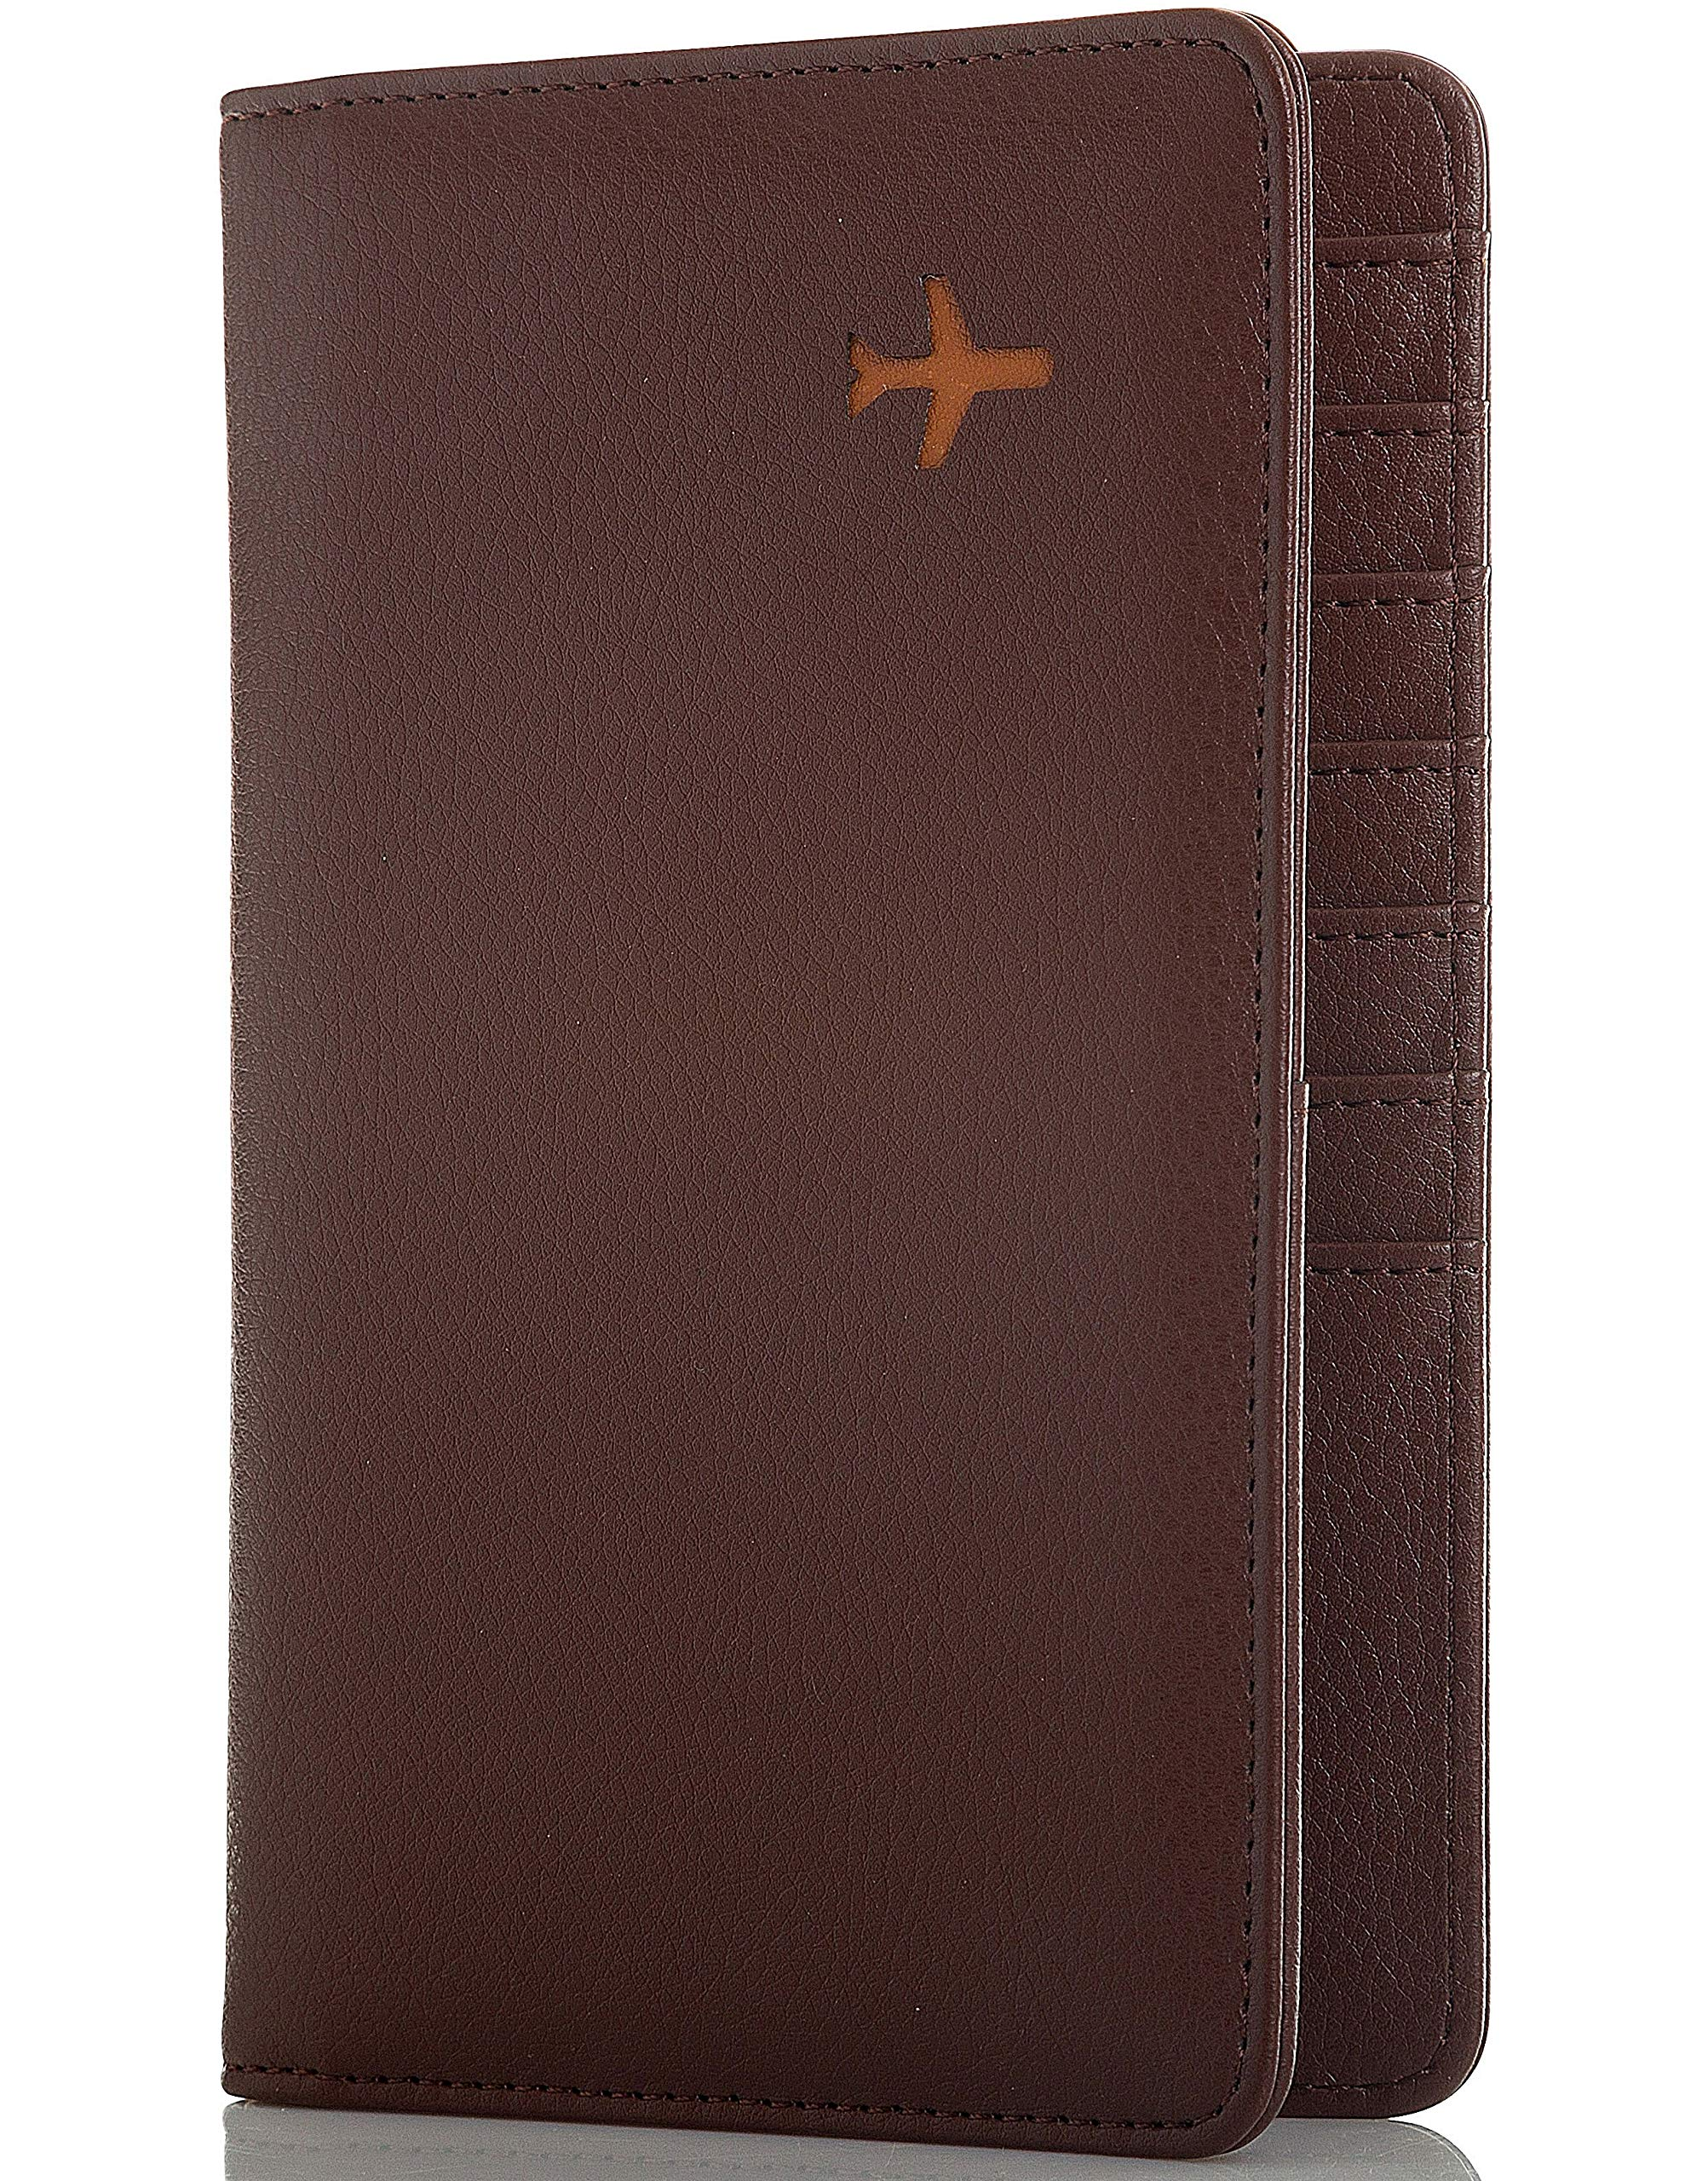 All in One Travel Wallet - 2 Passport Holder + Gift Box/cash tickets cards pen (Chocolate Brown)